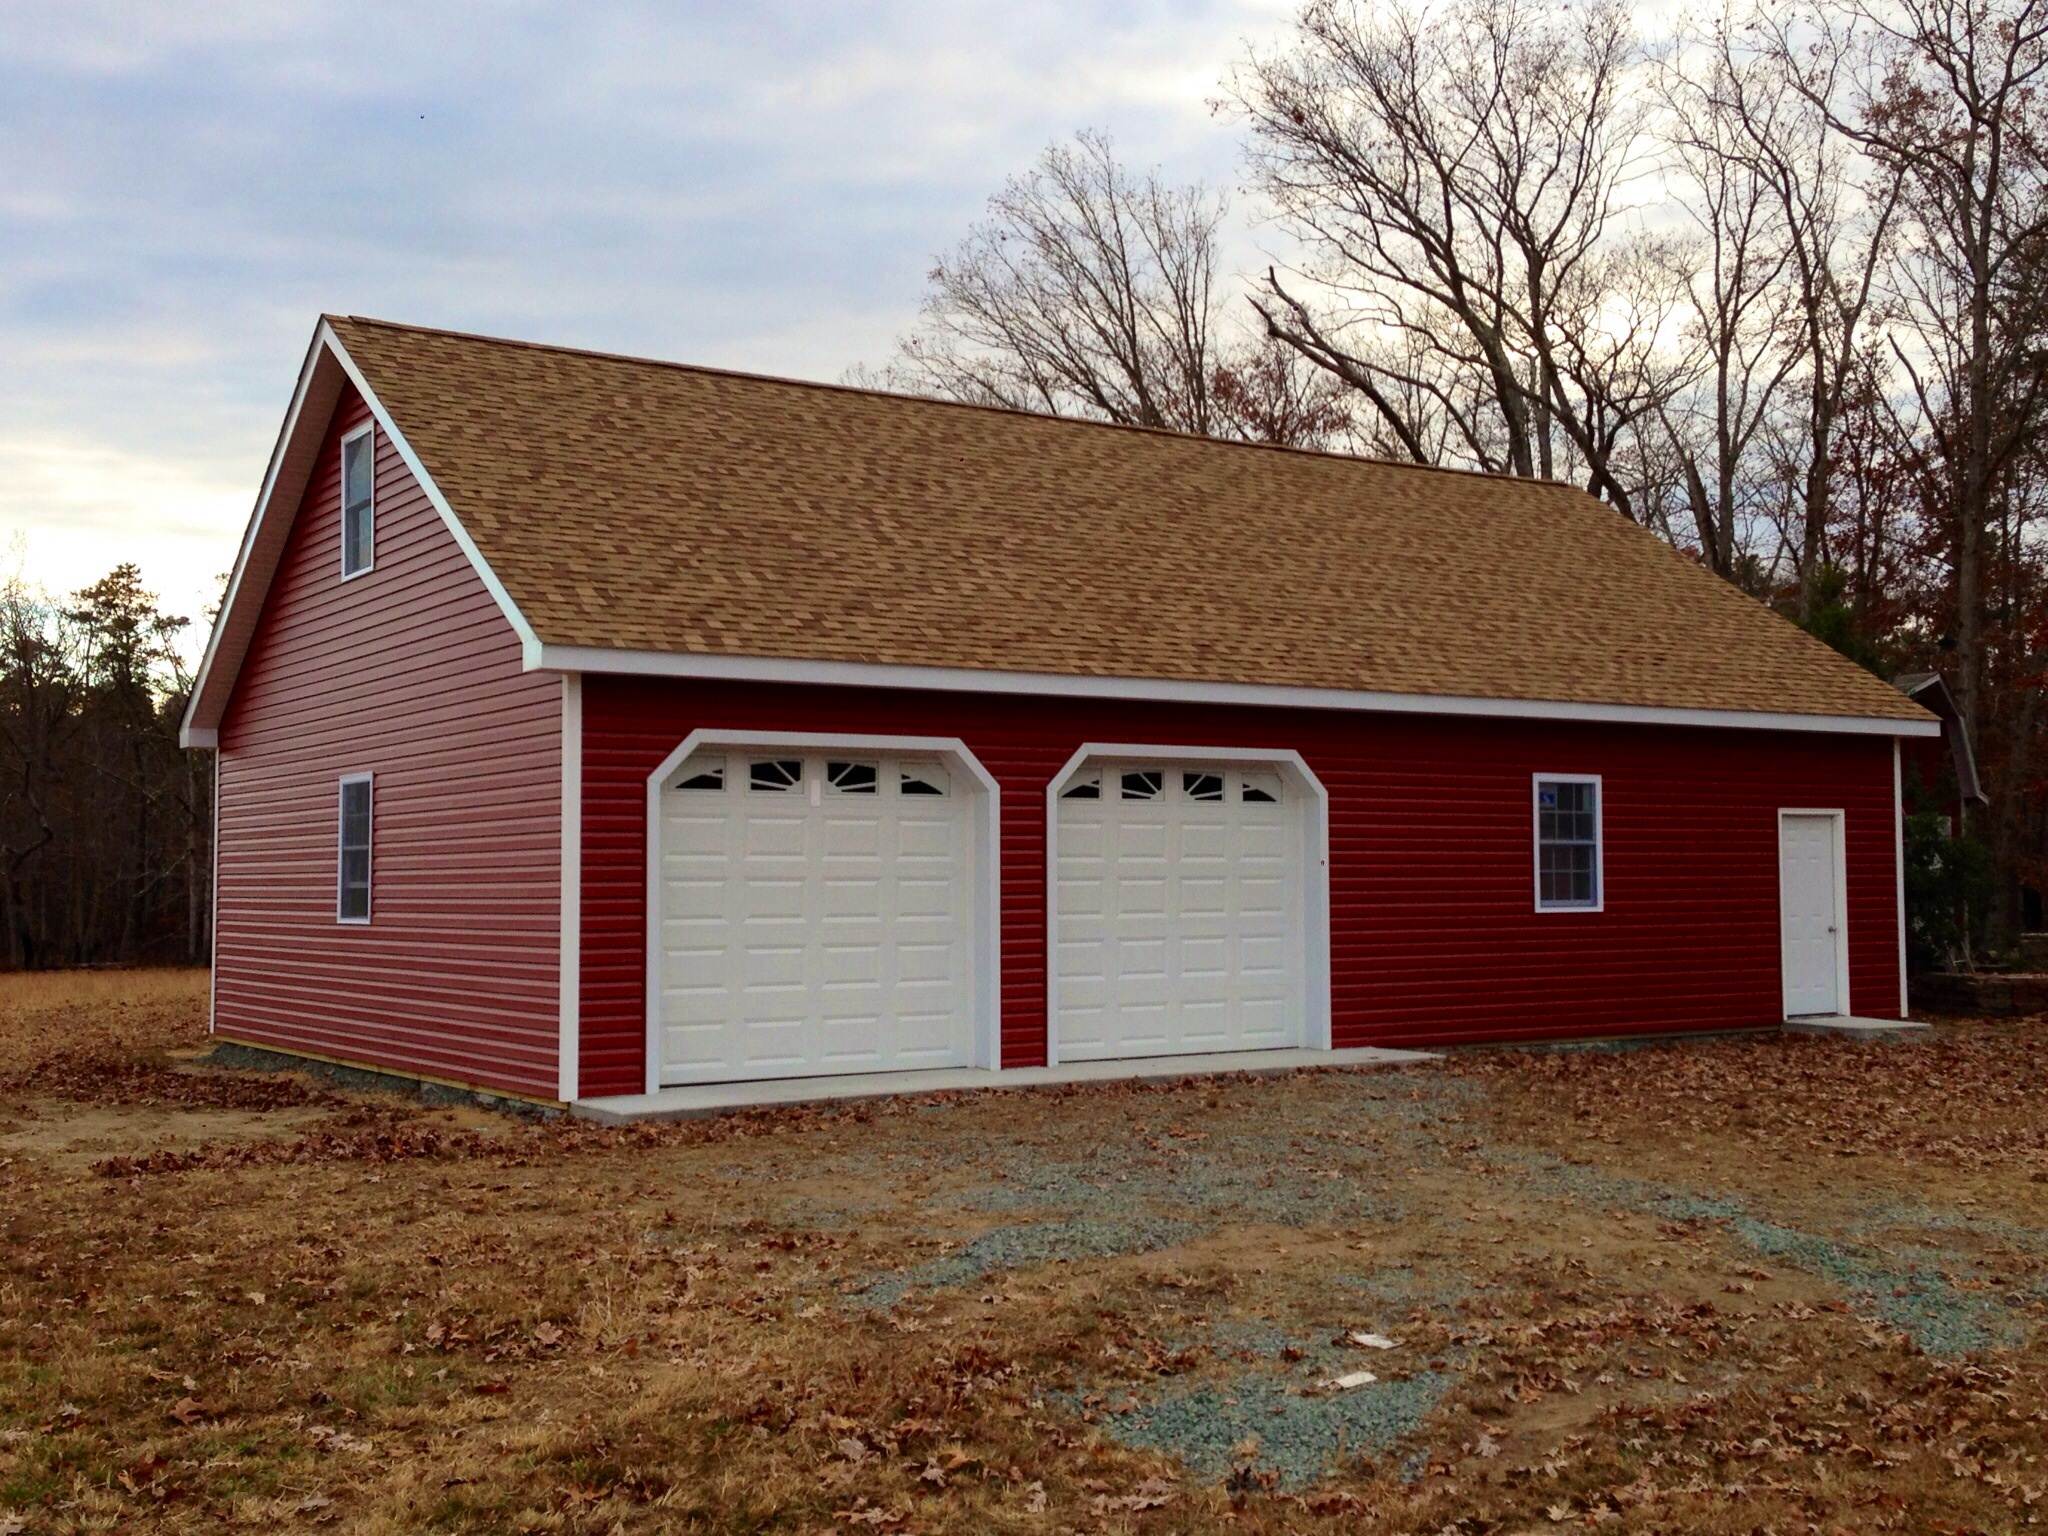 Garage With Vinyl Siding And Shingle Roof Lancaster Pole